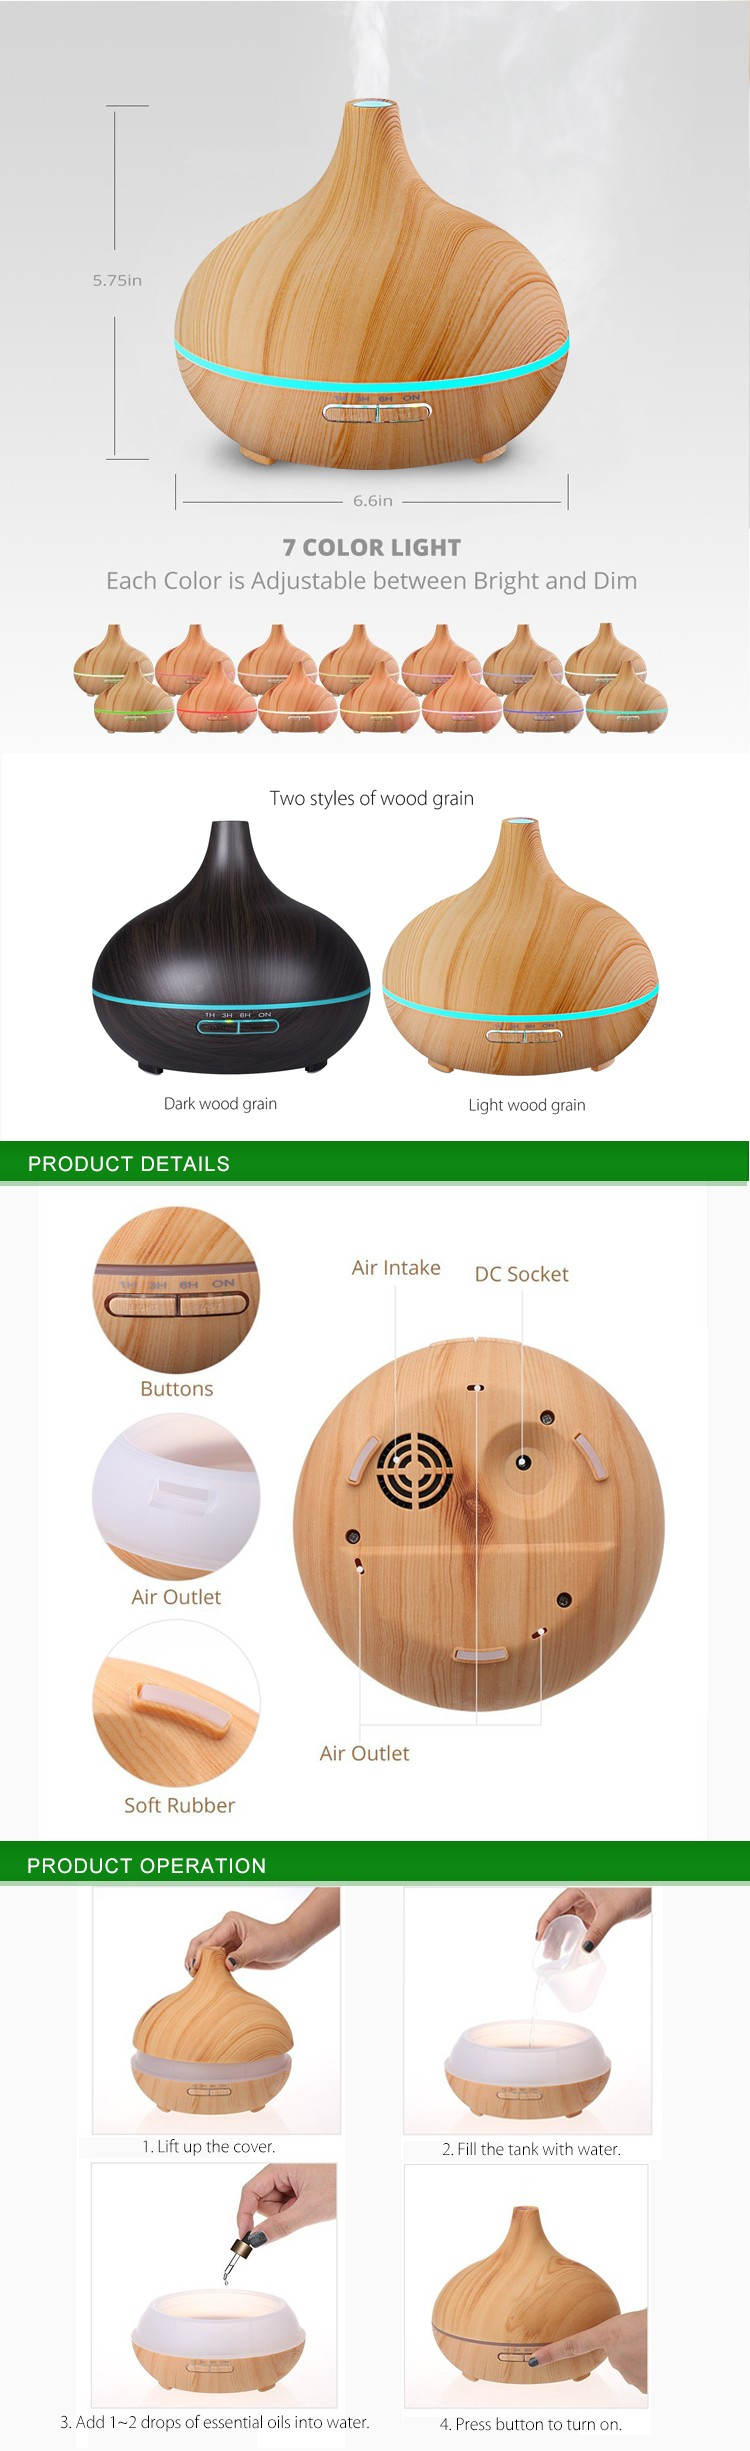 Aromacare Commercial Scent Machines Aroma Diffuser Car For Office Home Bedroom Living Room Study Yoga Spa